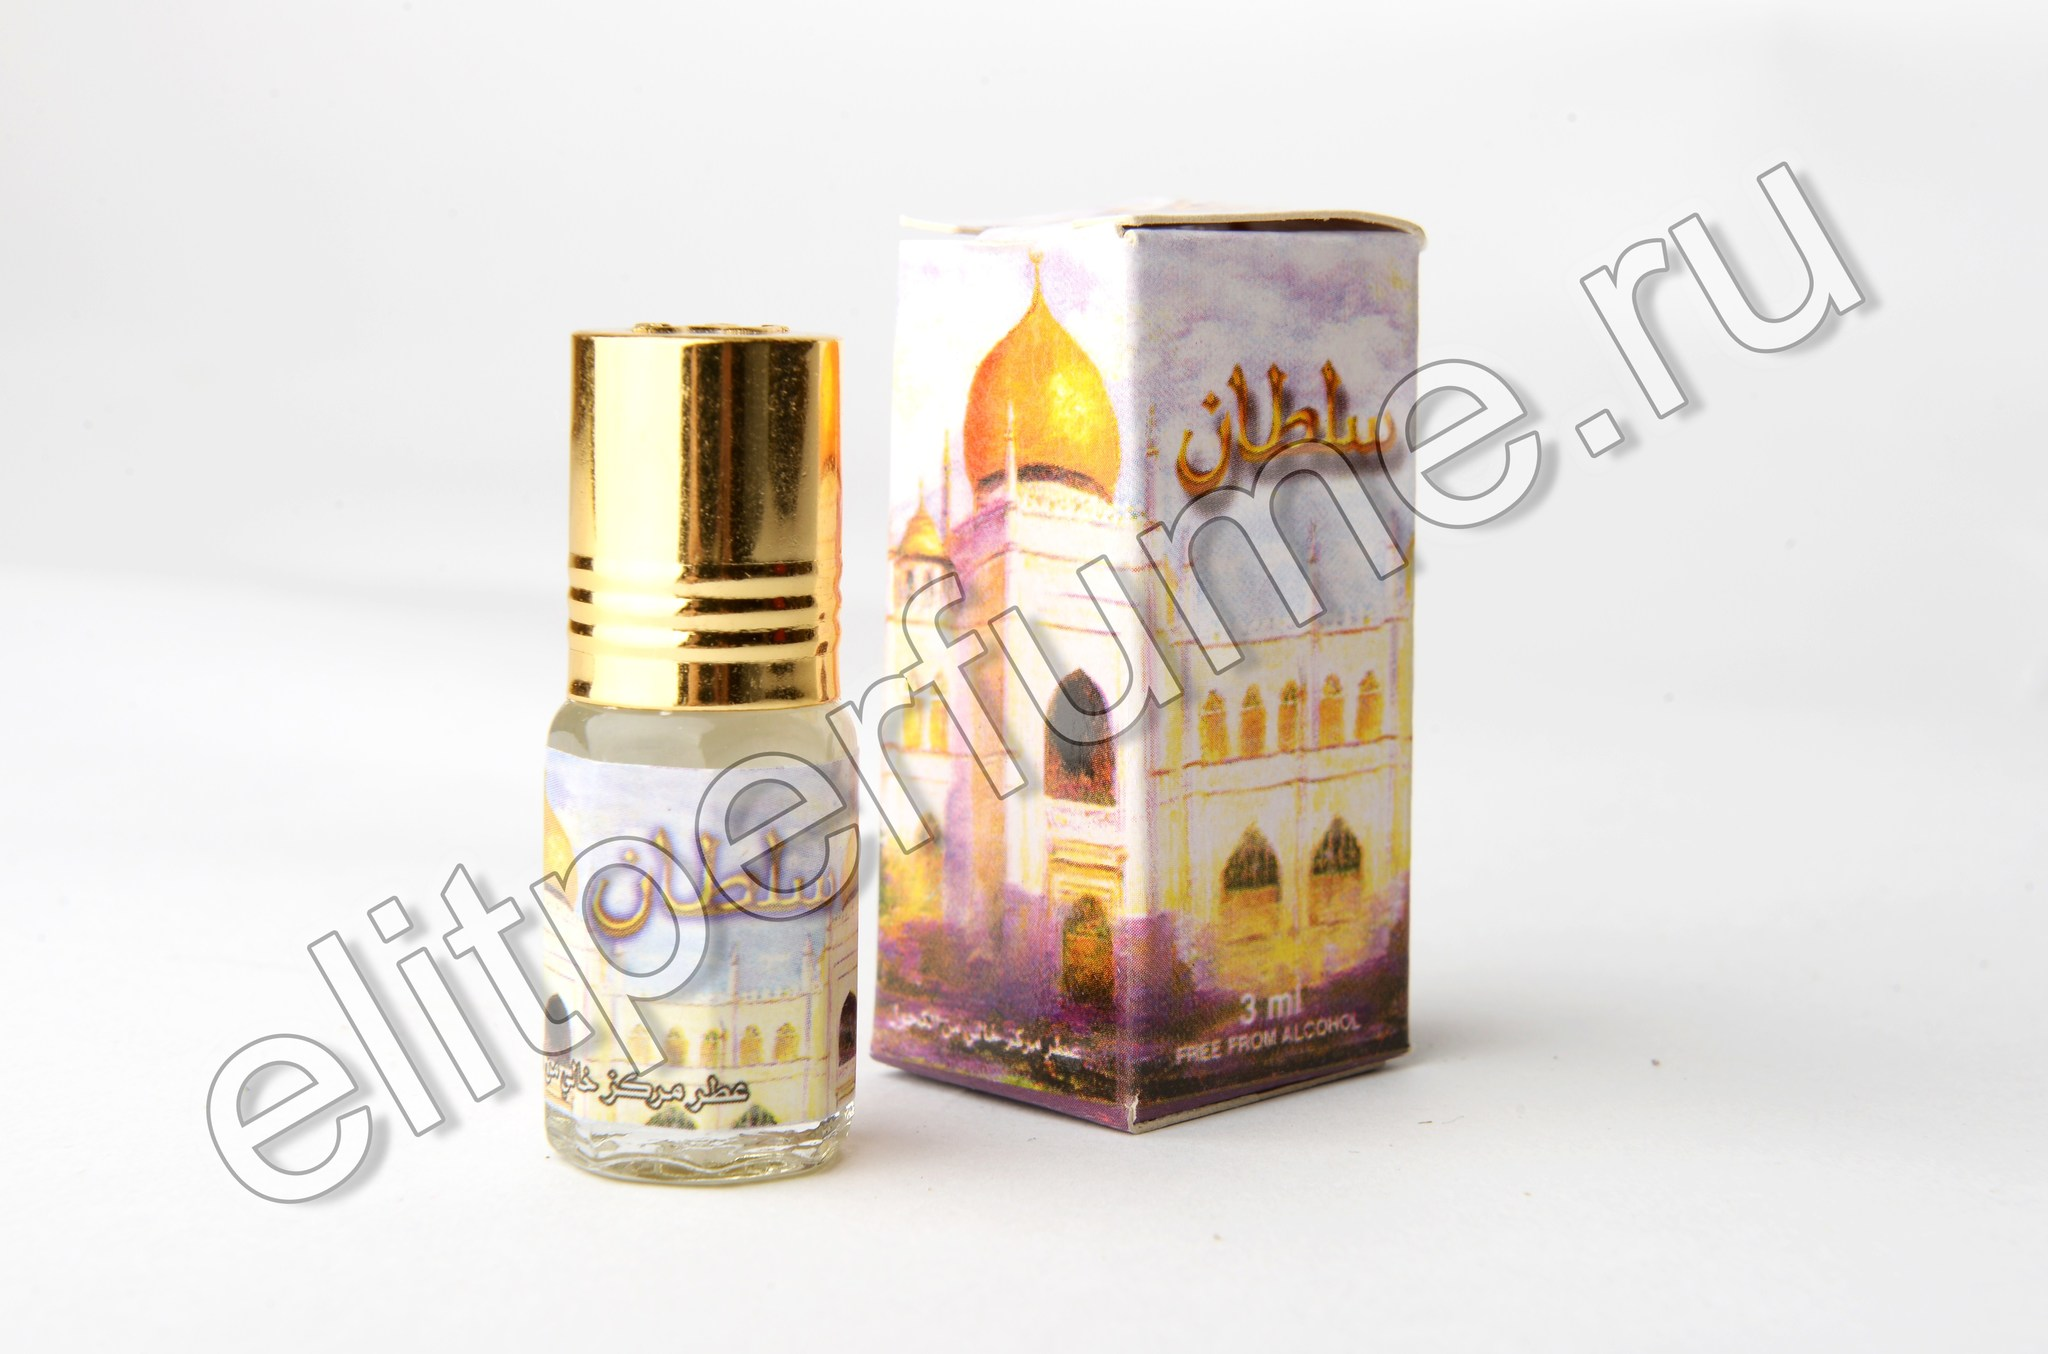 Sultan 3 мл арабские масляные духи от Захра Zahra Perfumes